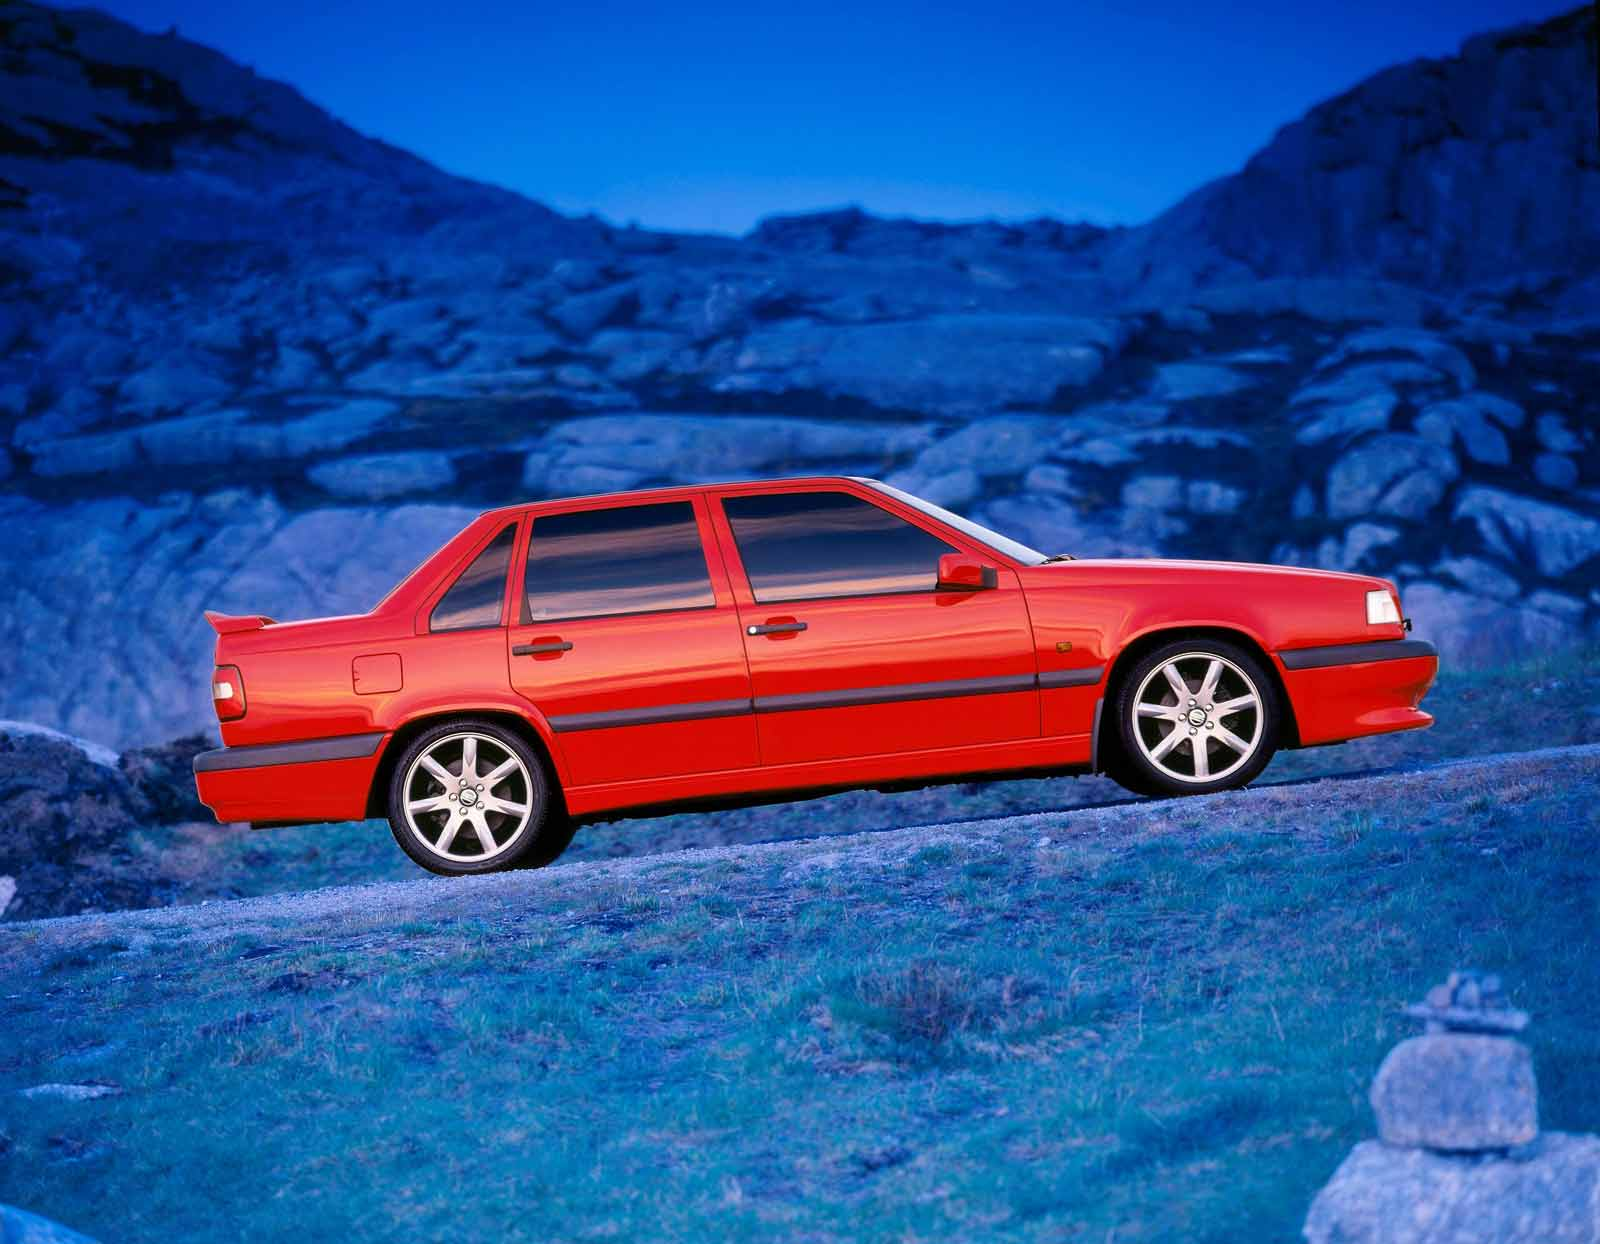 Volvo 850 -  850, 854, 1996, Exterior, Historical, Images, R, sedan